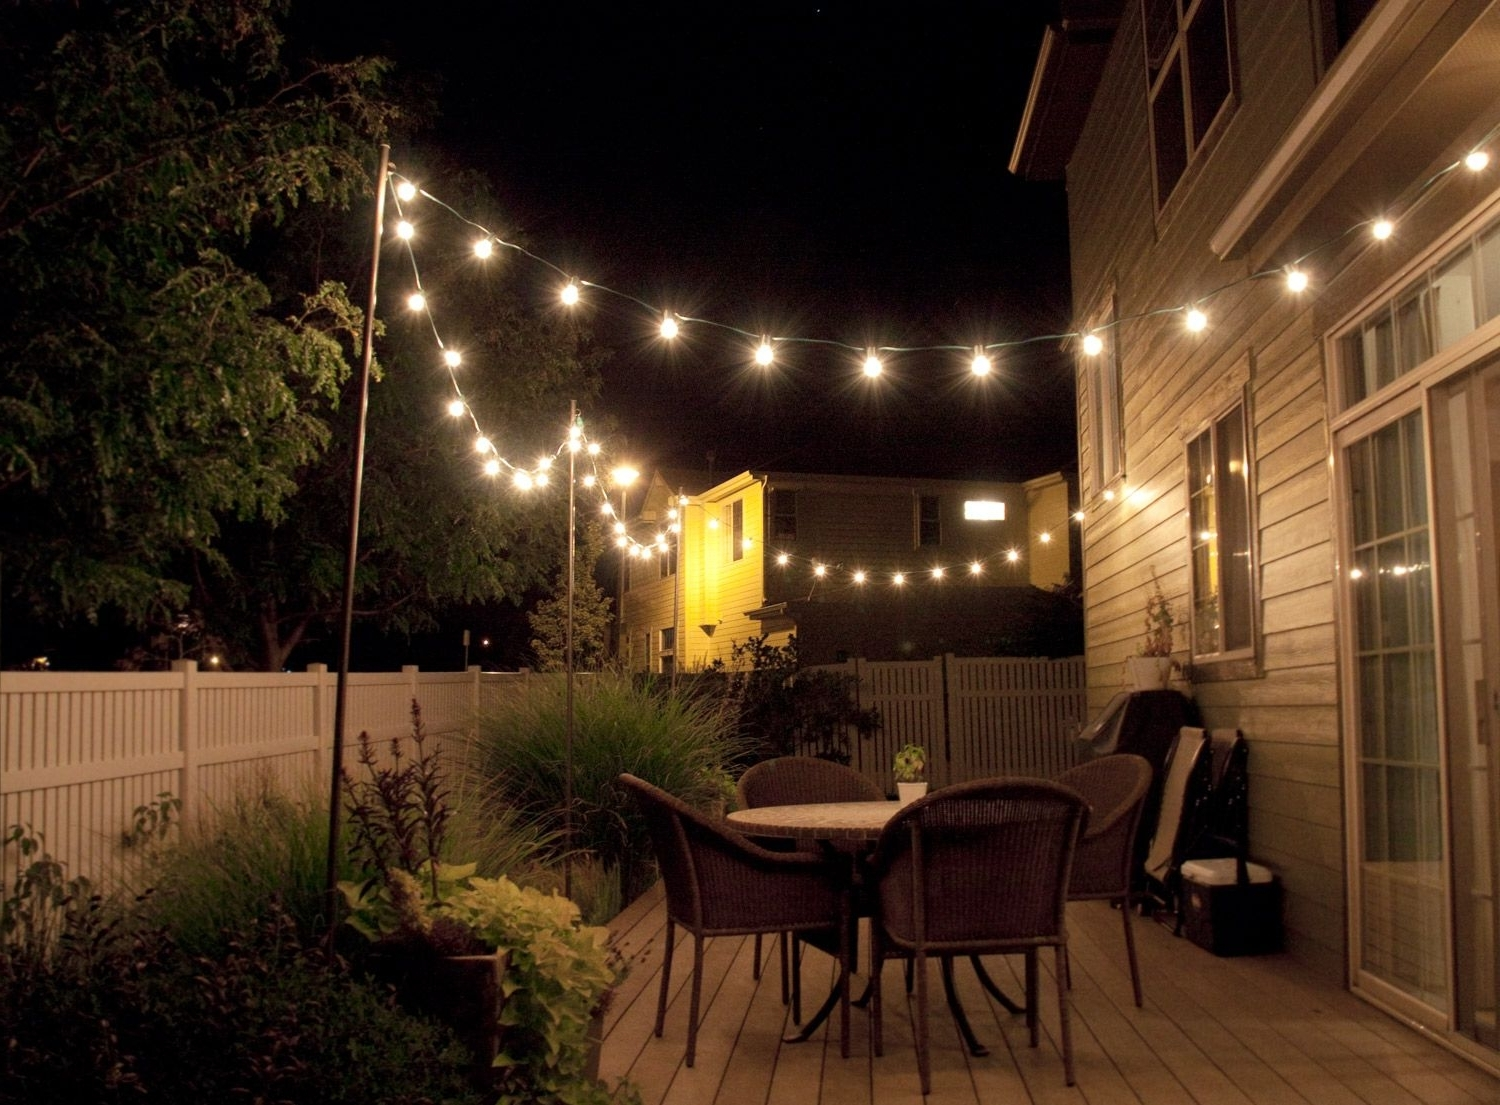 How To Make Inexpensive Poles To Hang String Lights On – Café Style With Regard To Well Known Hanging Outdoor Cafe Lights (View 3 of 20)